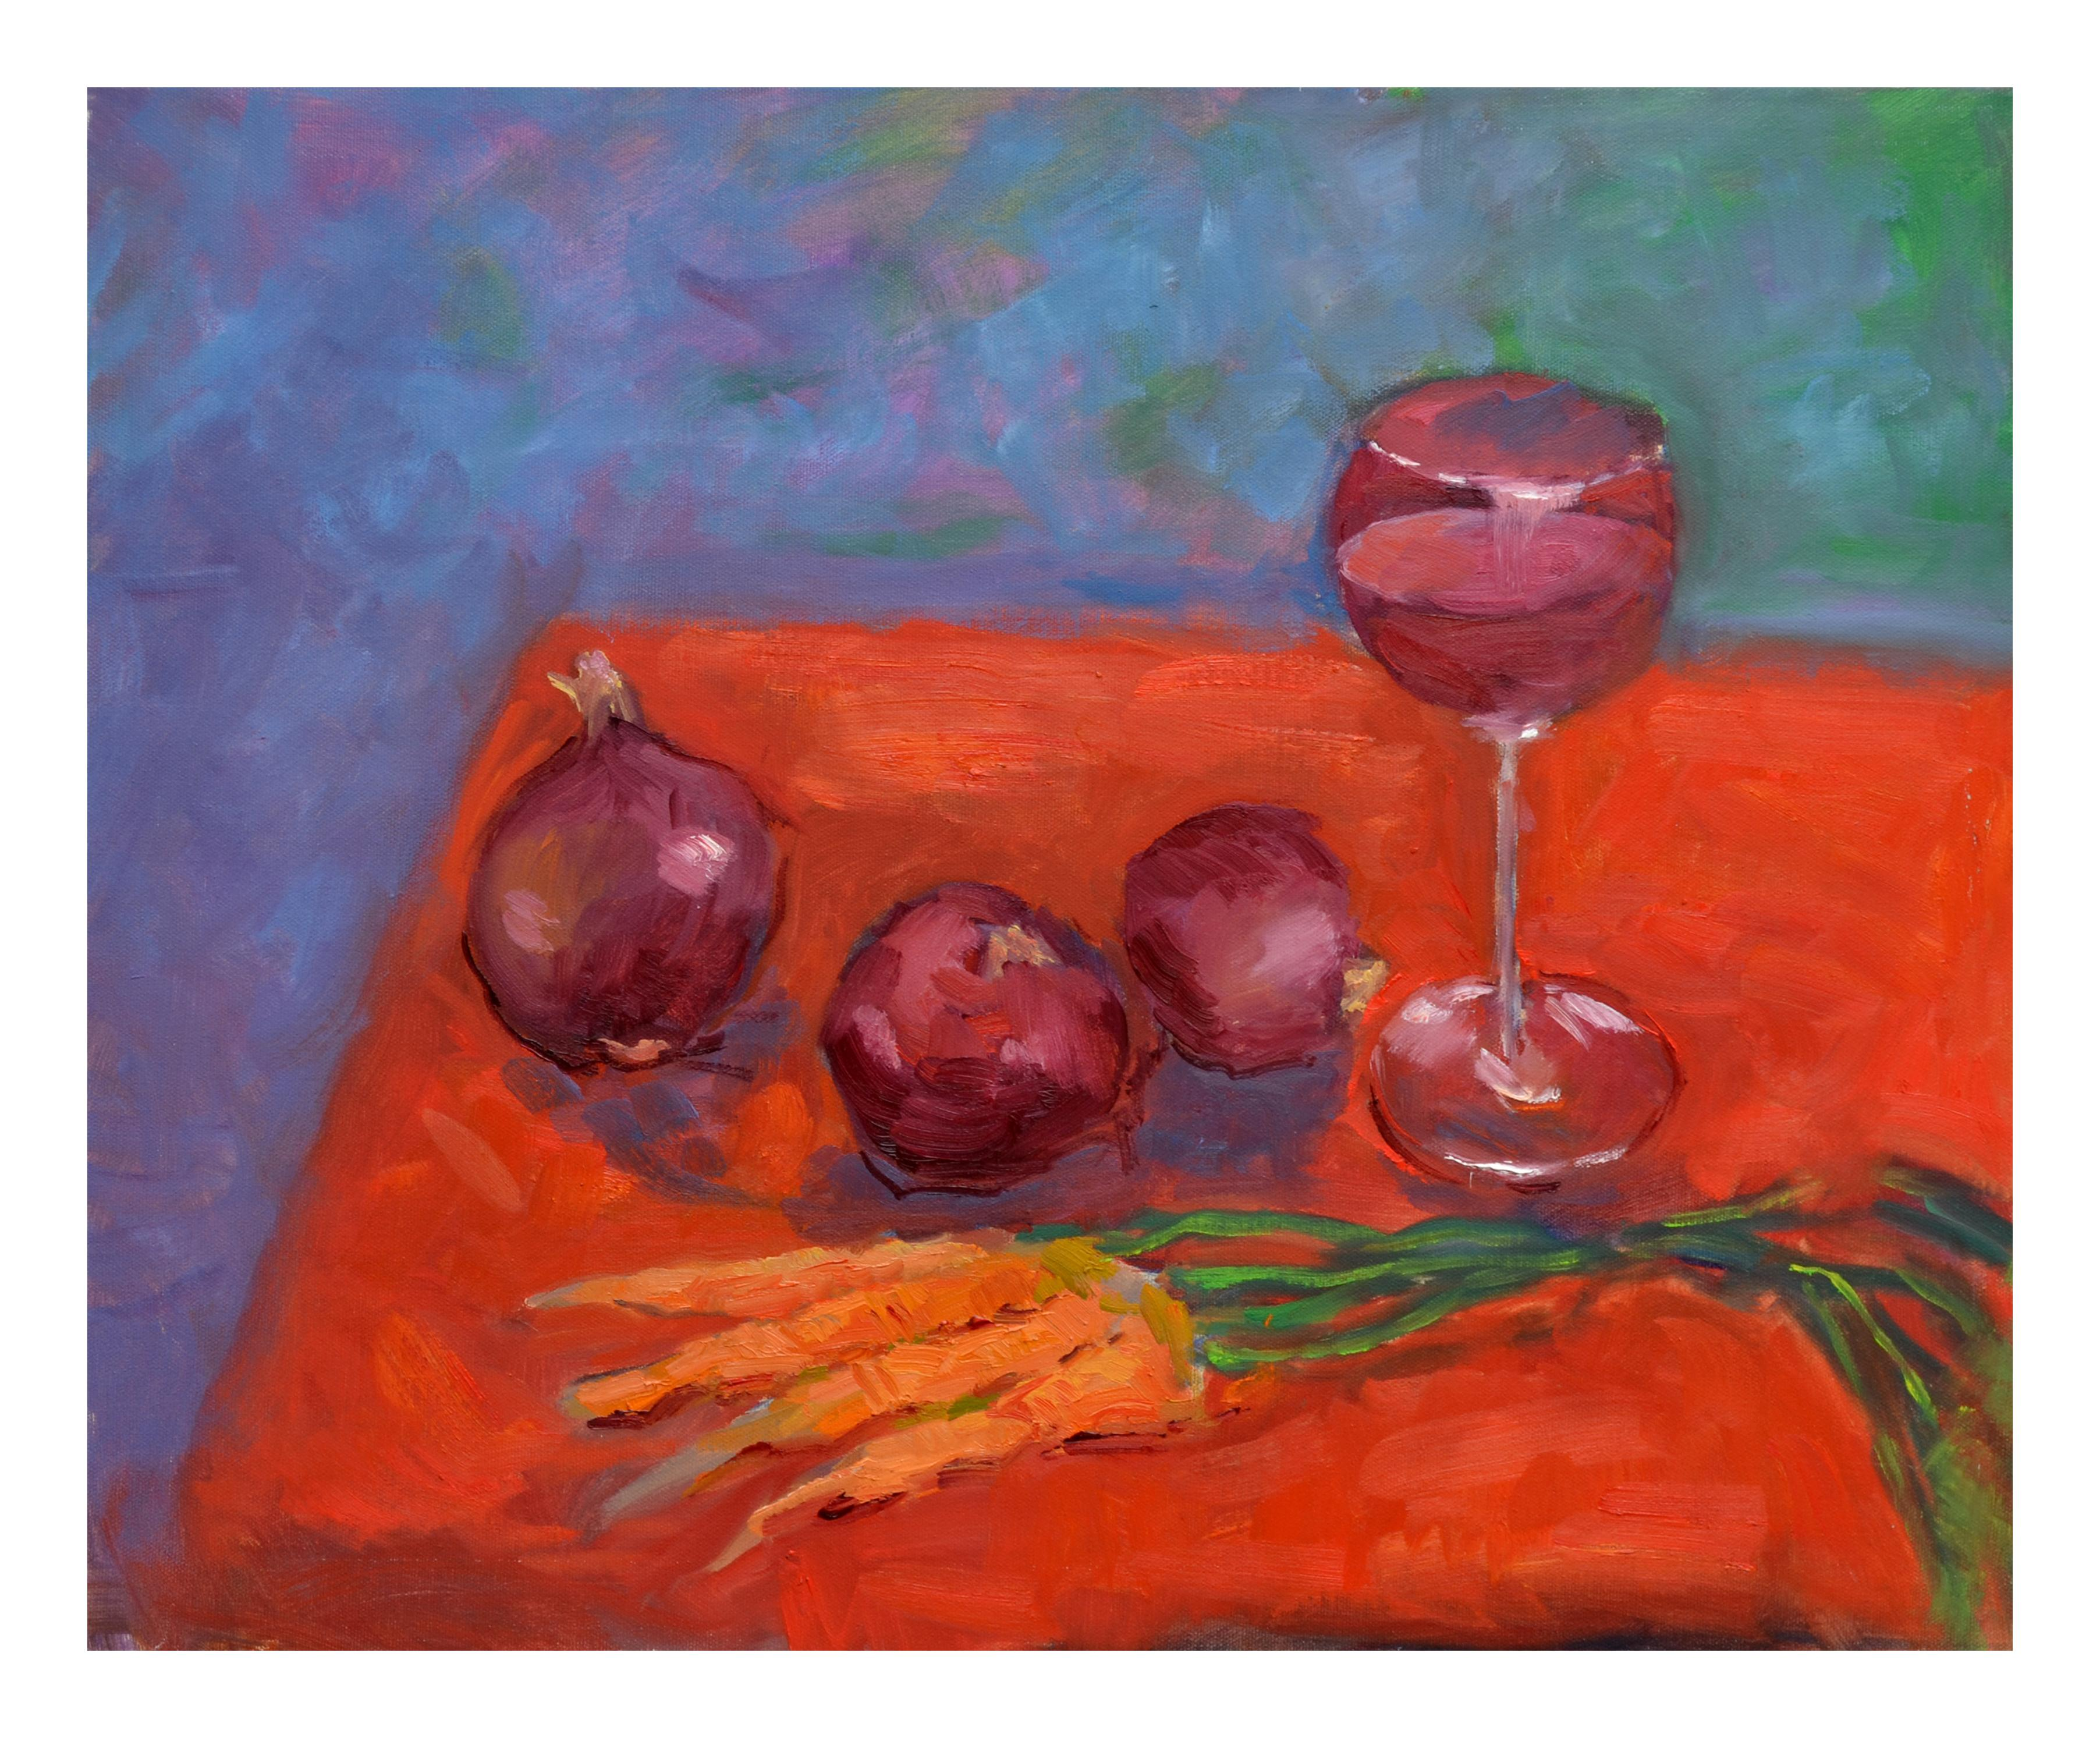 Wine, Onion and Carrots Still Live